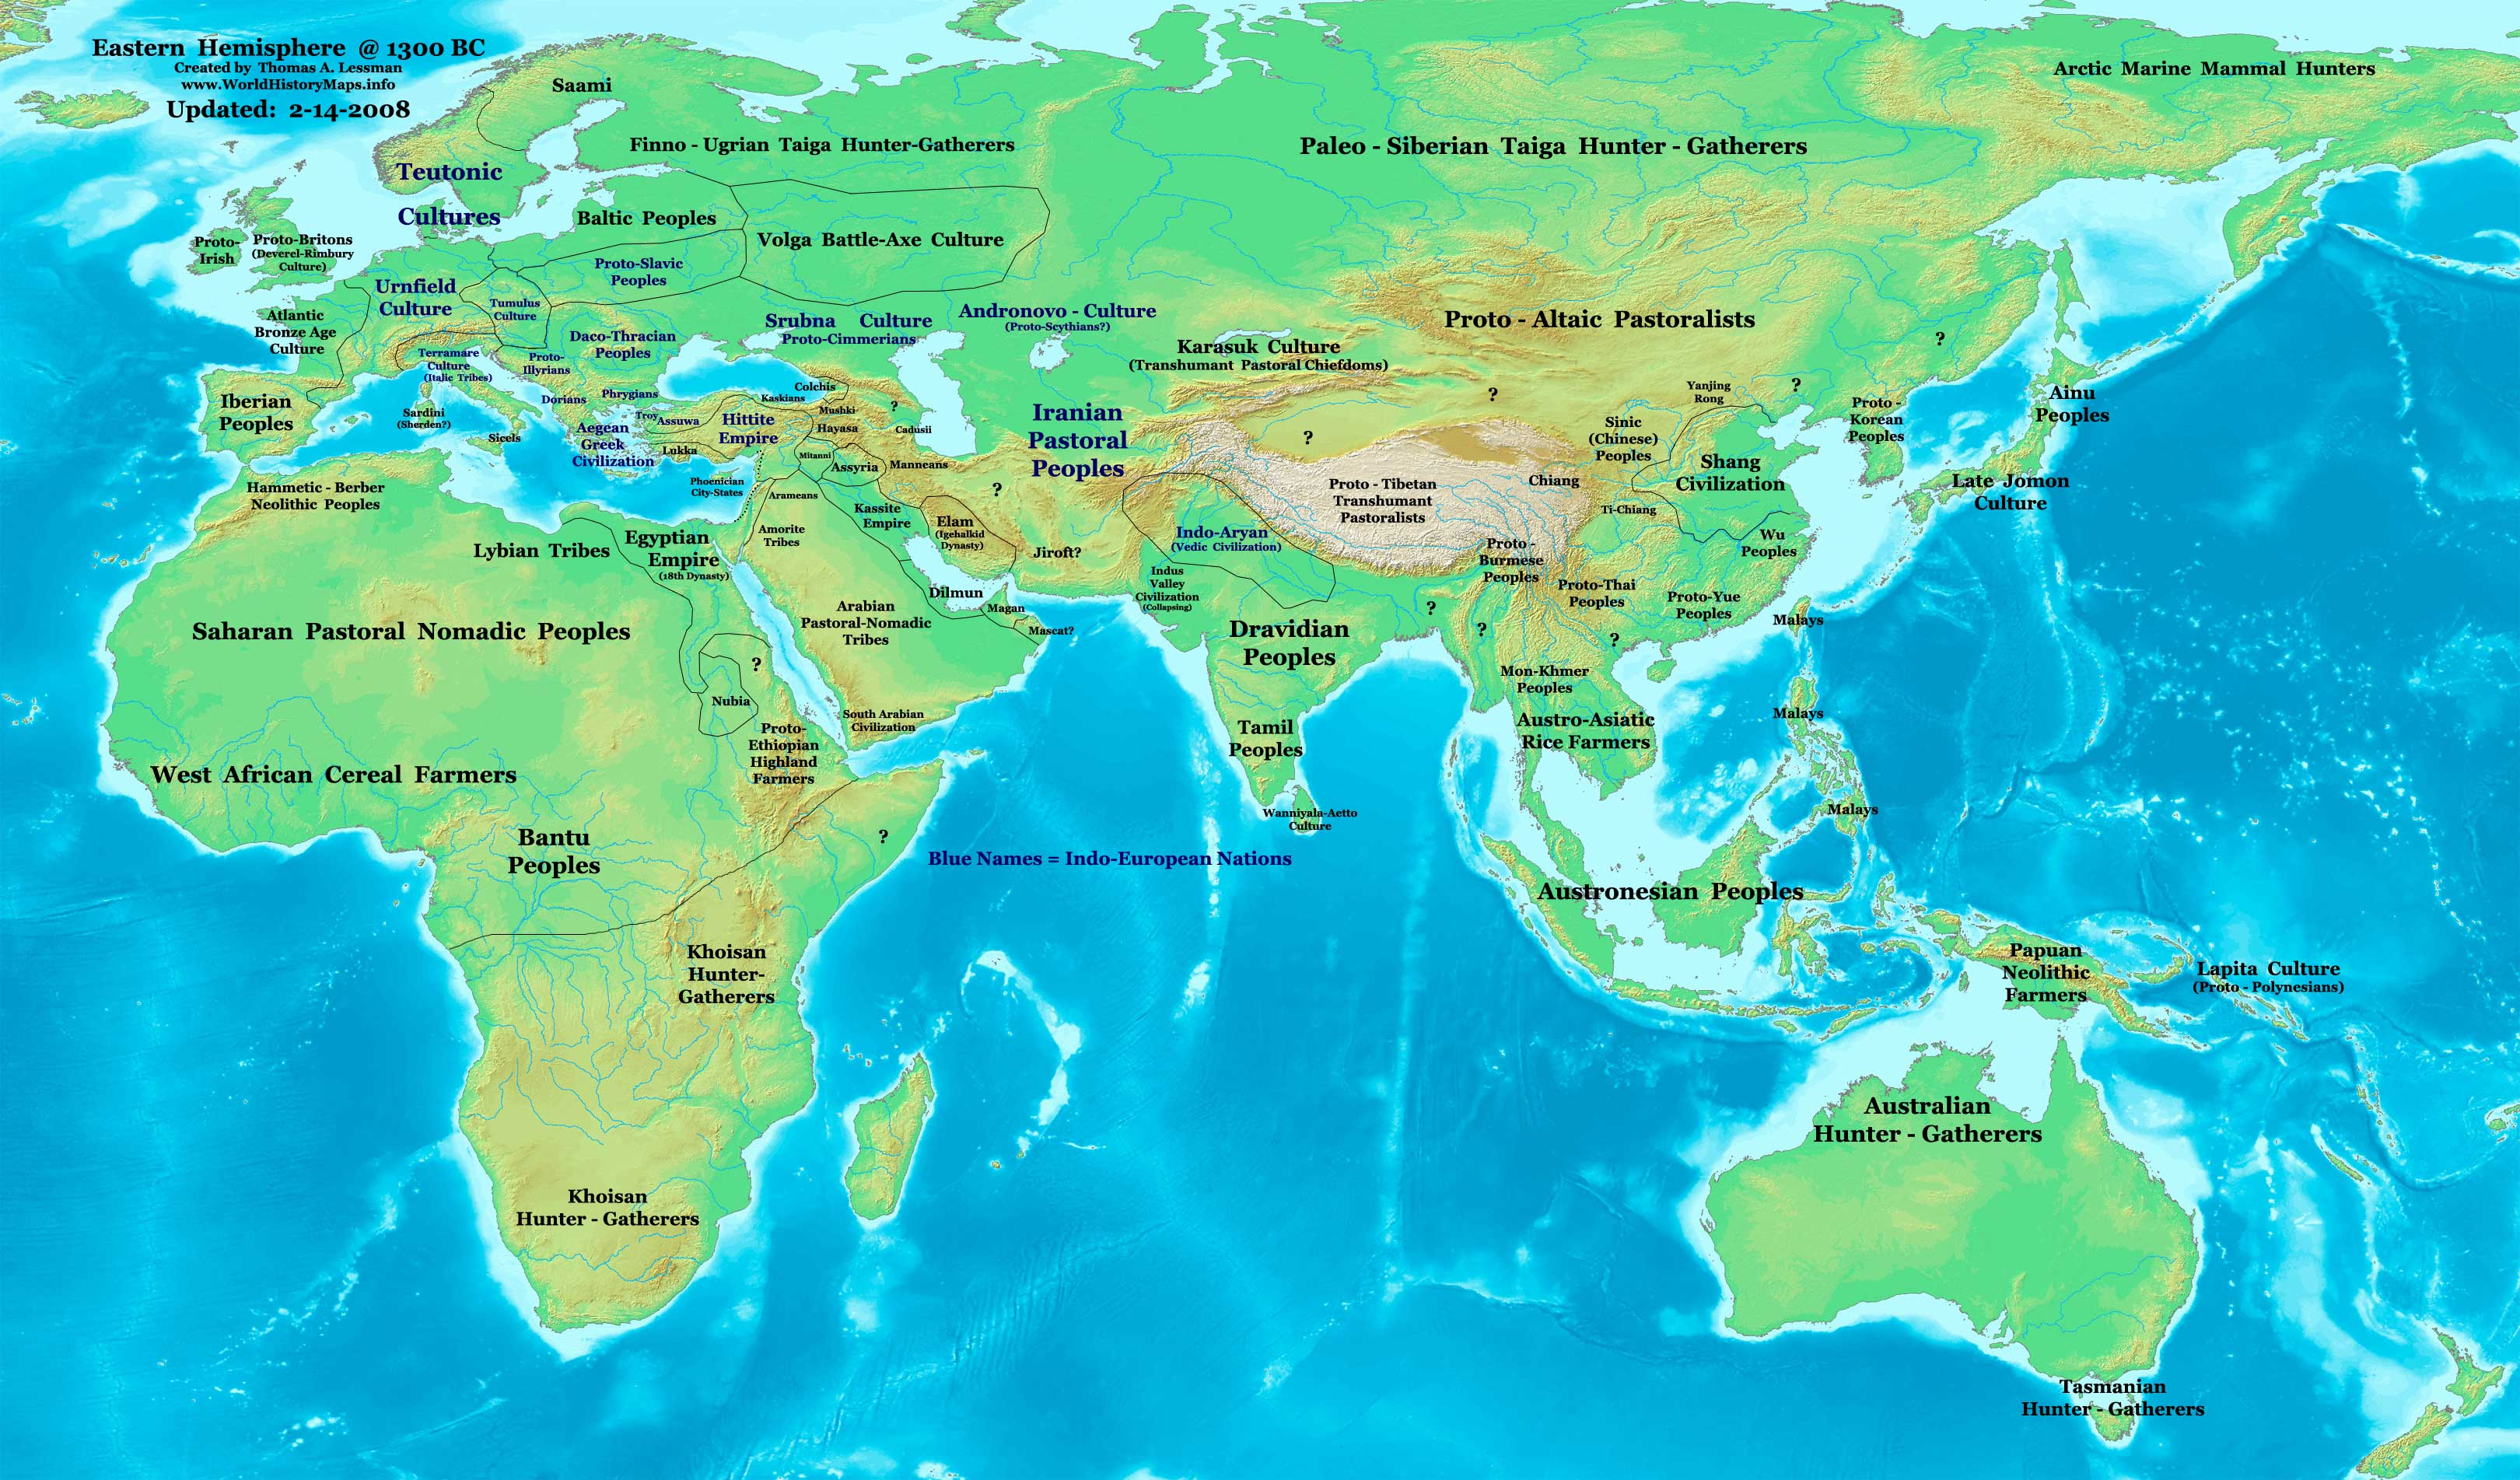 World History Maps By Thomas Lessman - Map of egypt 2000 bc